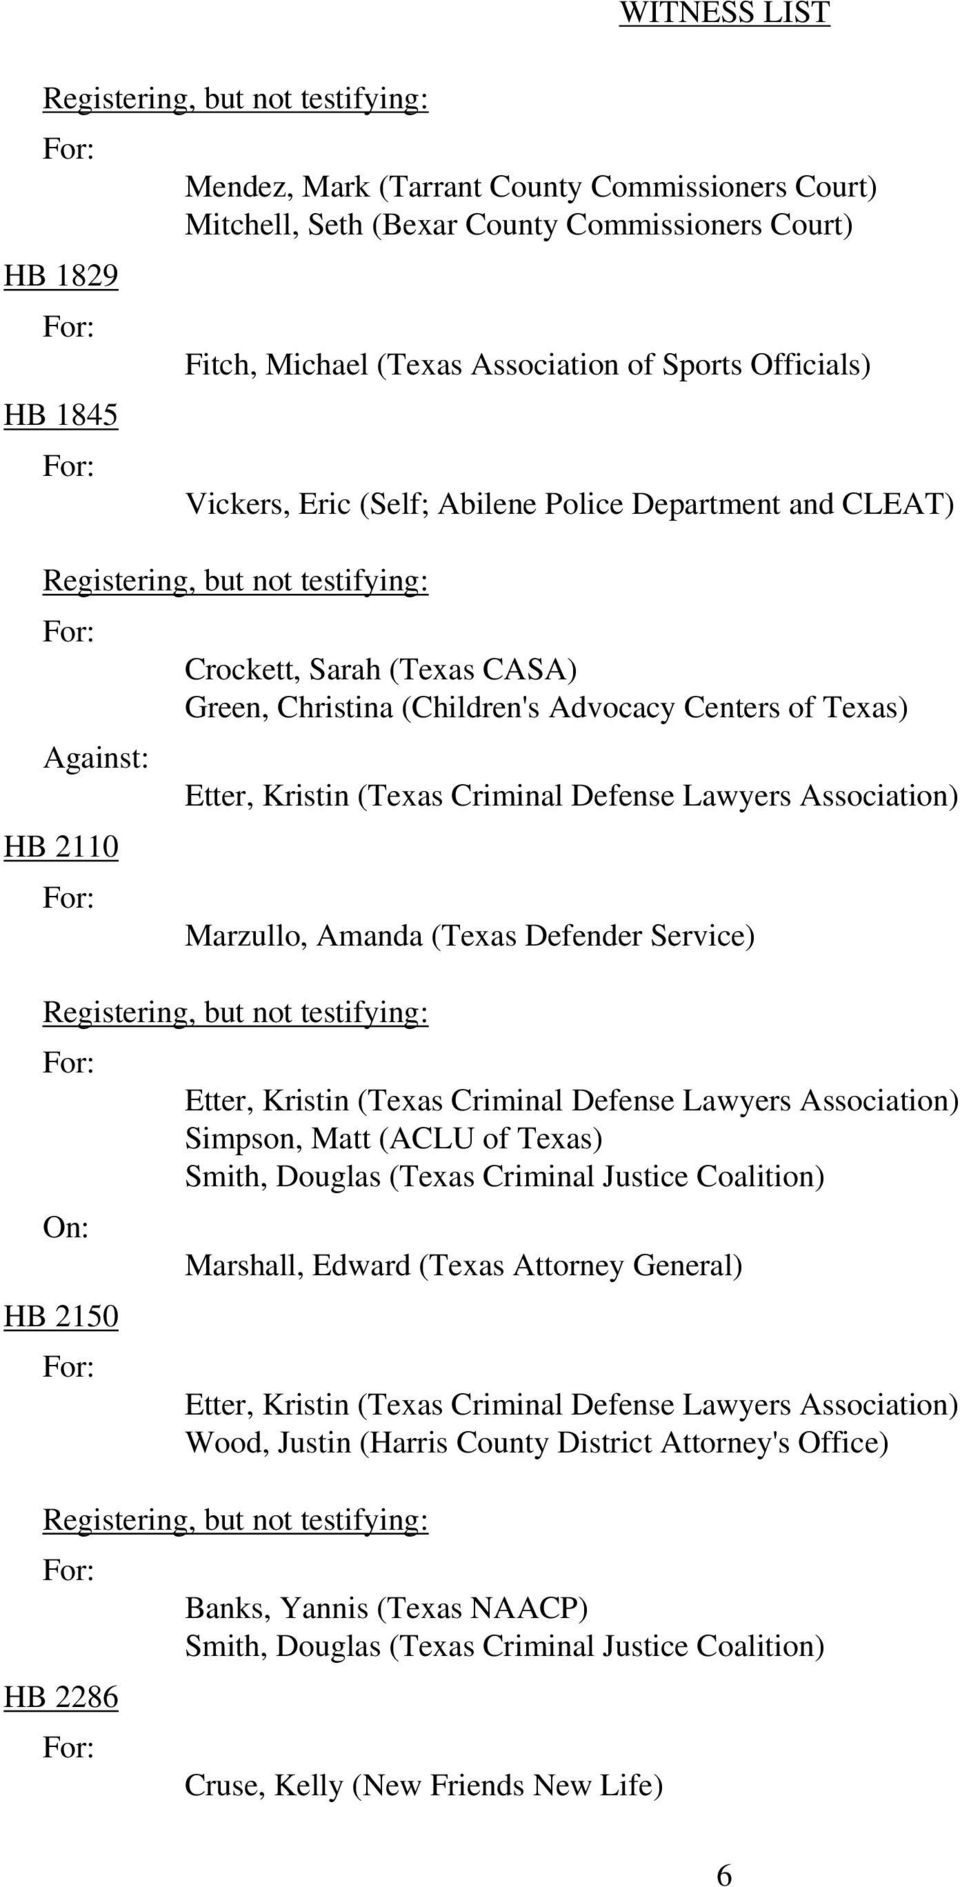 Centers of Texas) Marzullo, Amanda (Texas Defender Service) HB 2150 Smith, Douglas (Texas Criminal Justice Coalition) Marshall, Edward (Texas Attorney